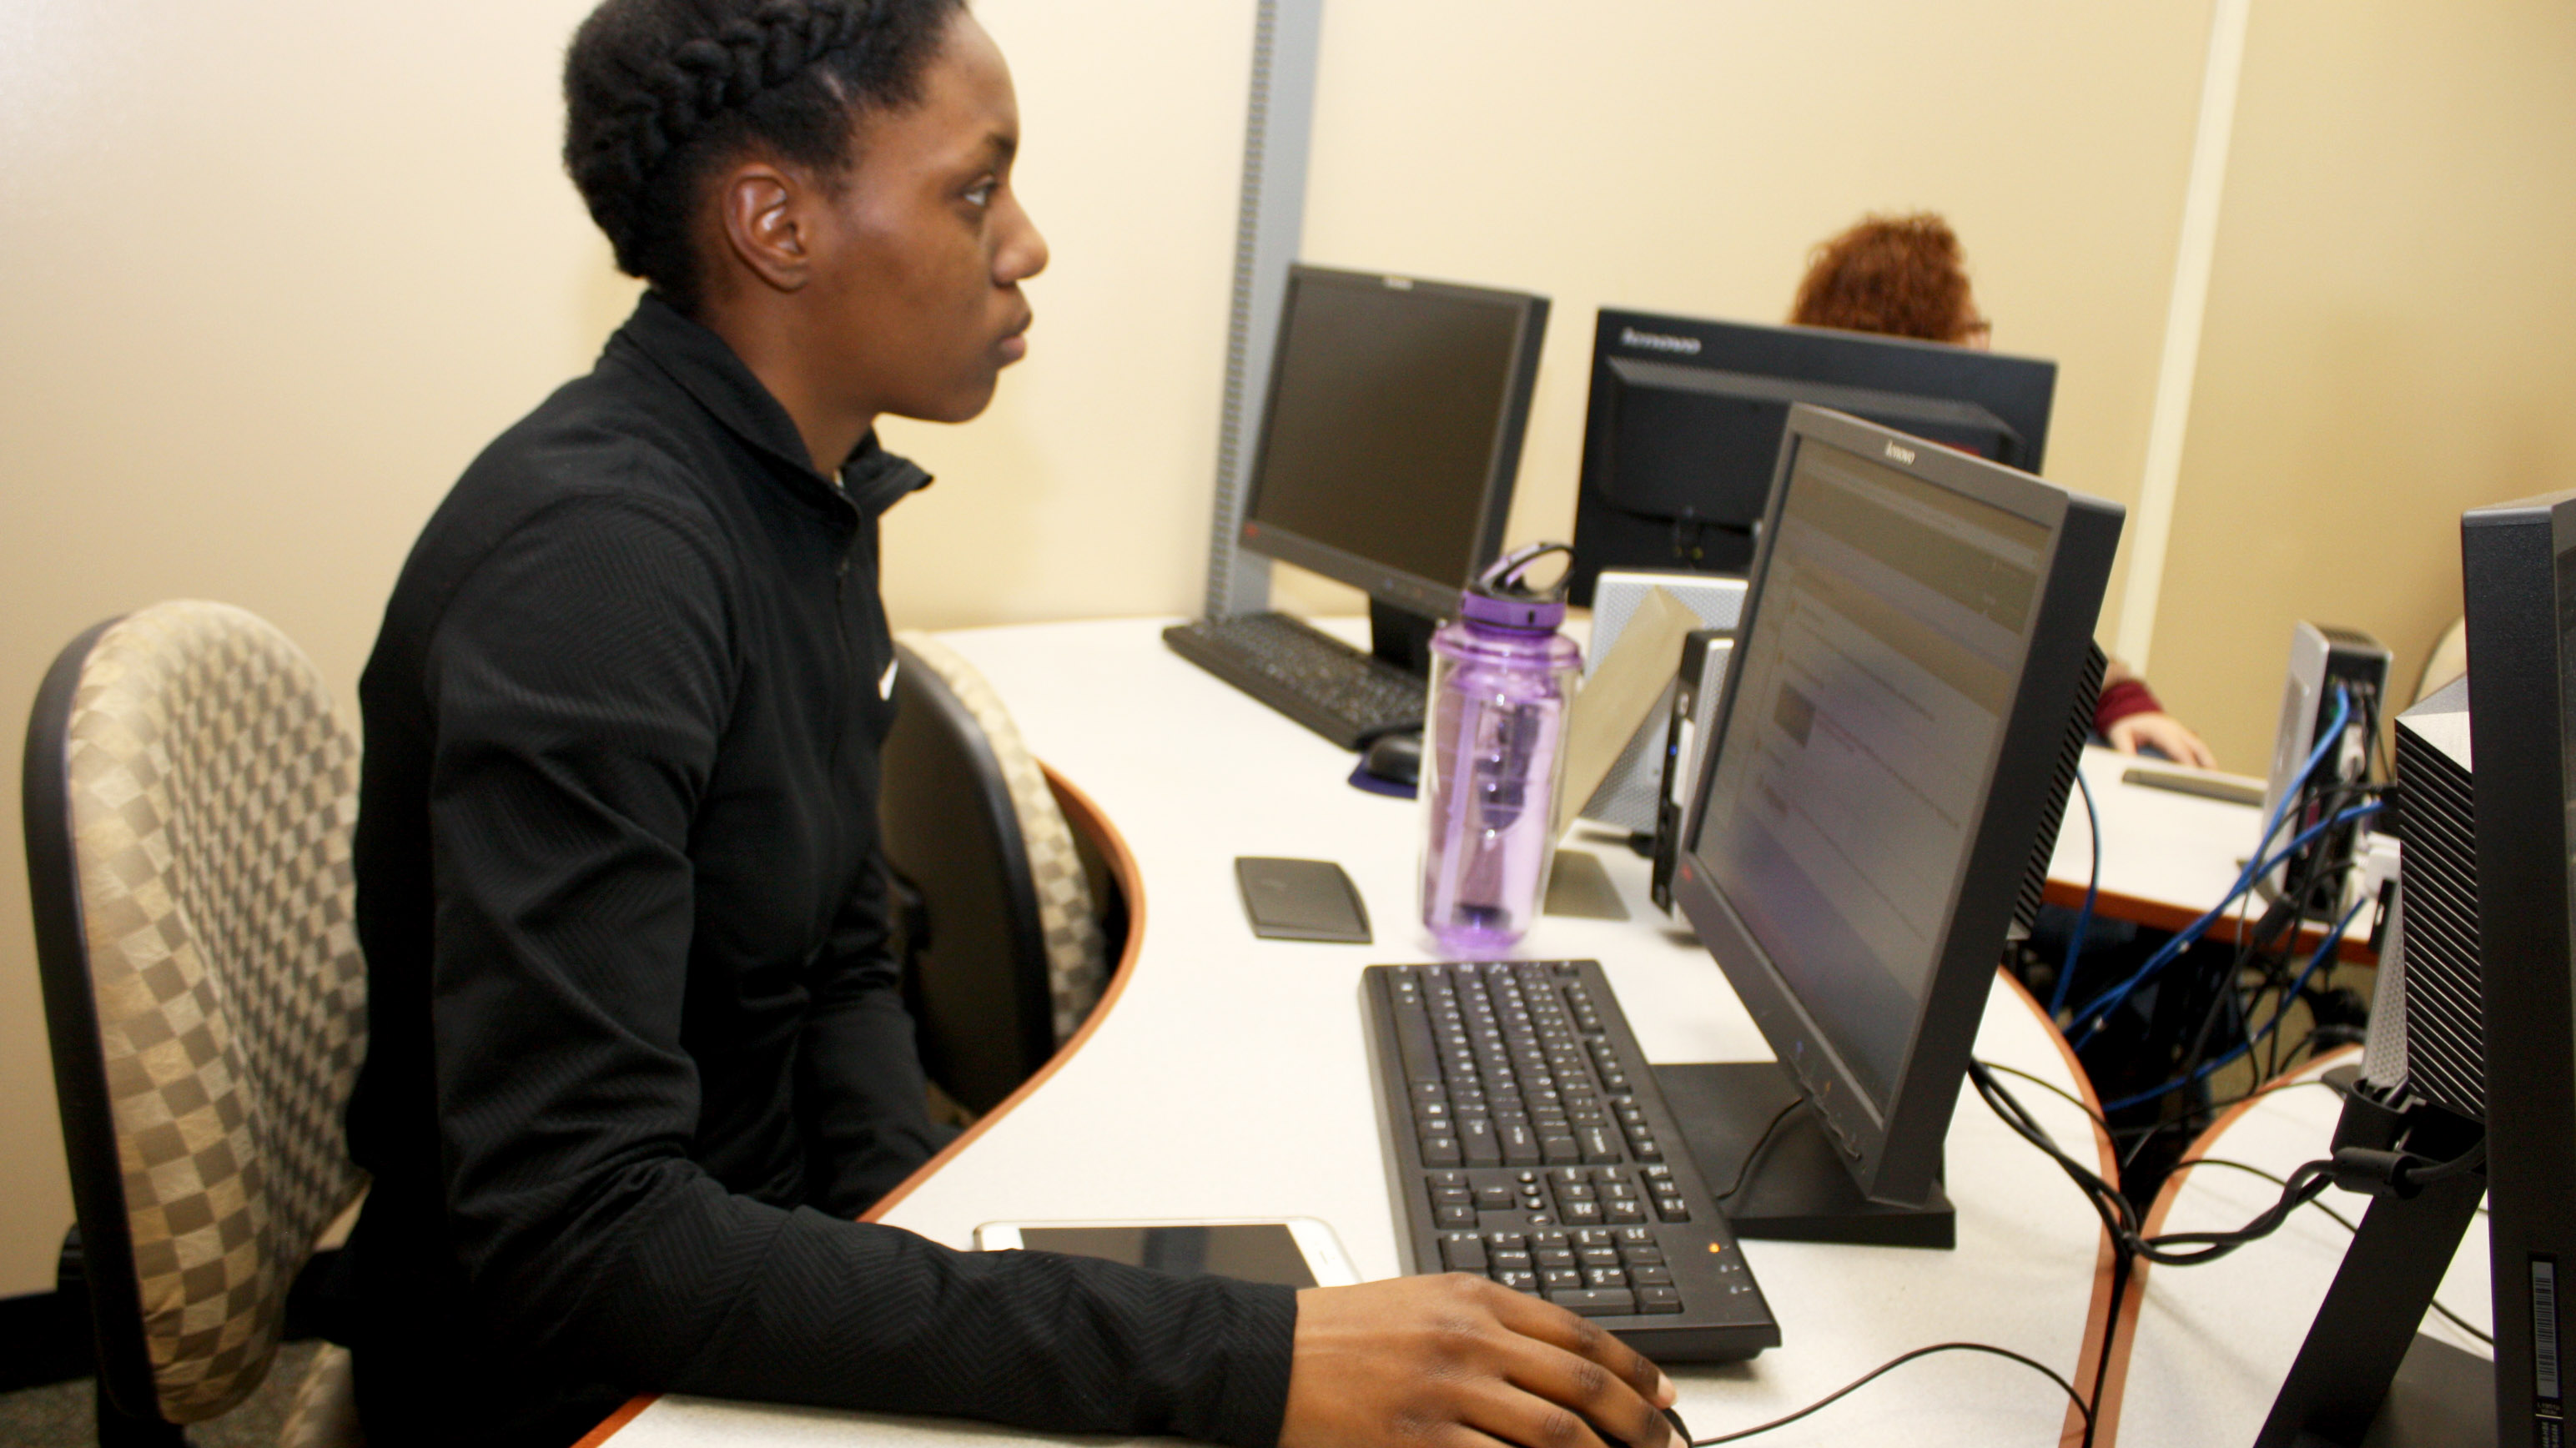 A female student in front of a computer.